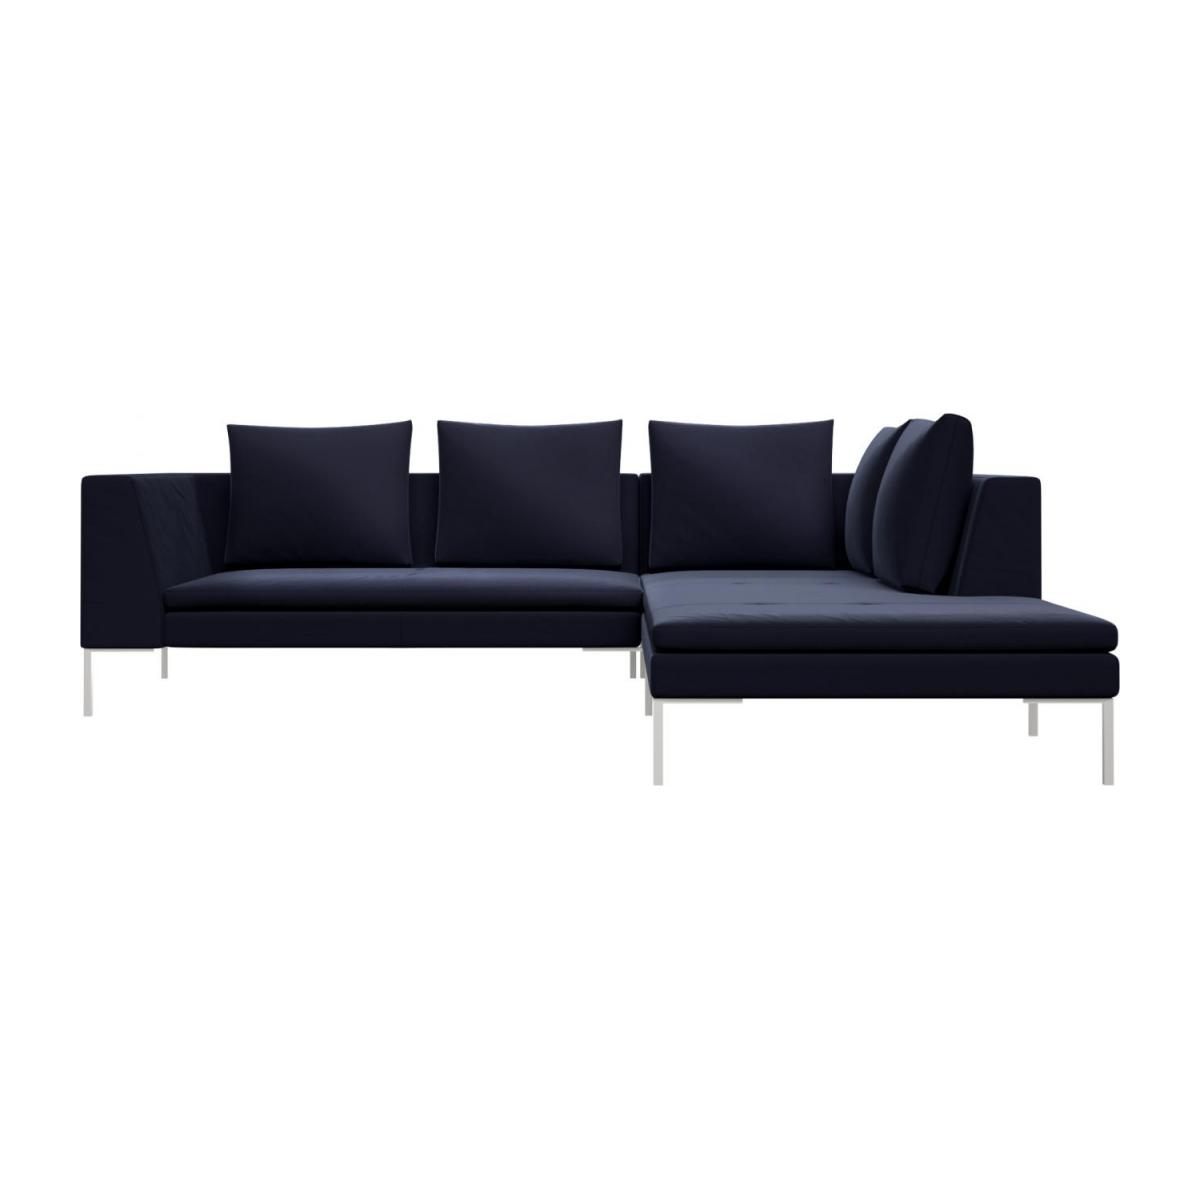 2 seater sofa with chaise longue on the right in Super Velvet fabric, dark blue  n°2